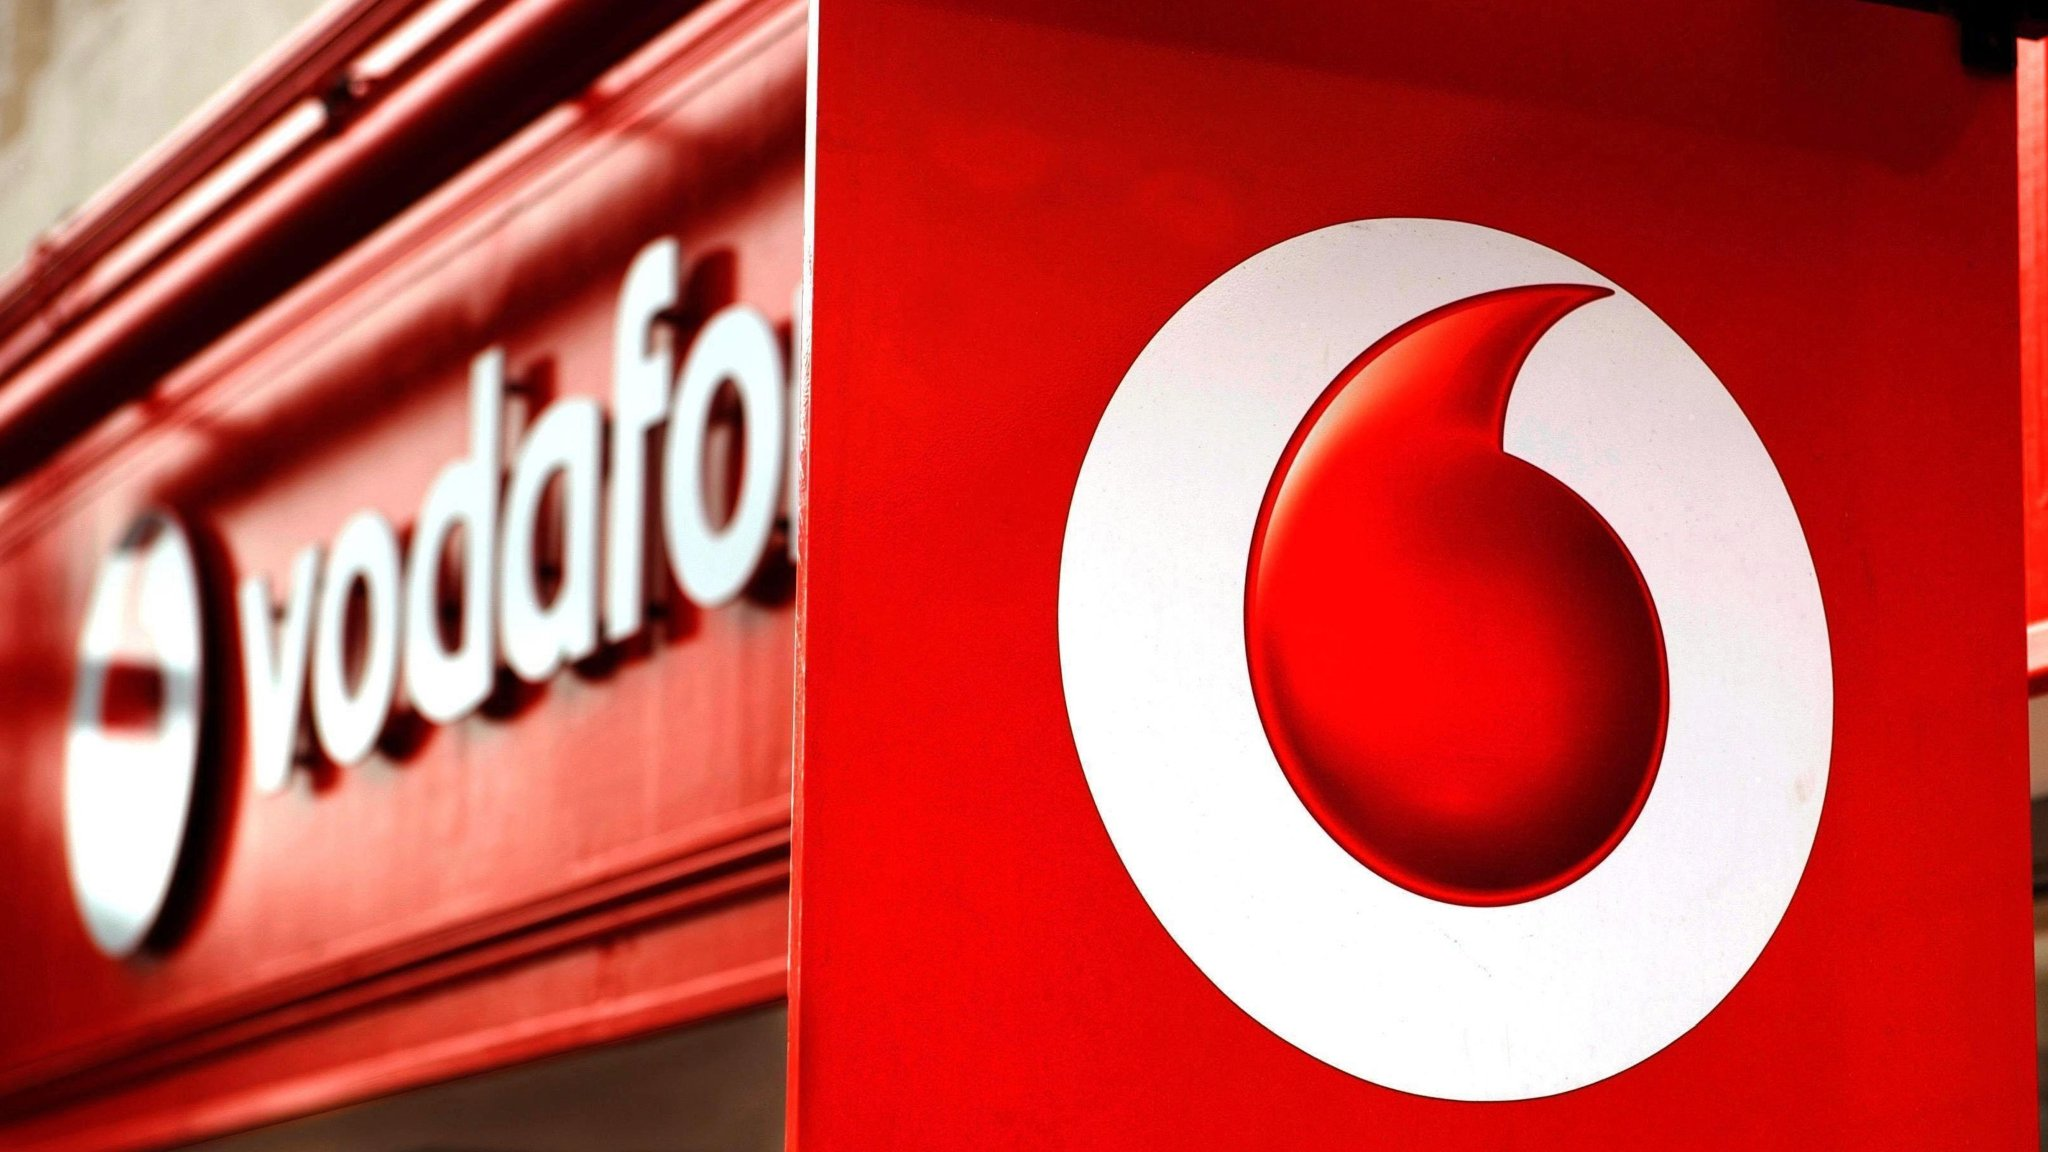 Vodafone Throws Down Gauntlet To Bt With New Fibre Network